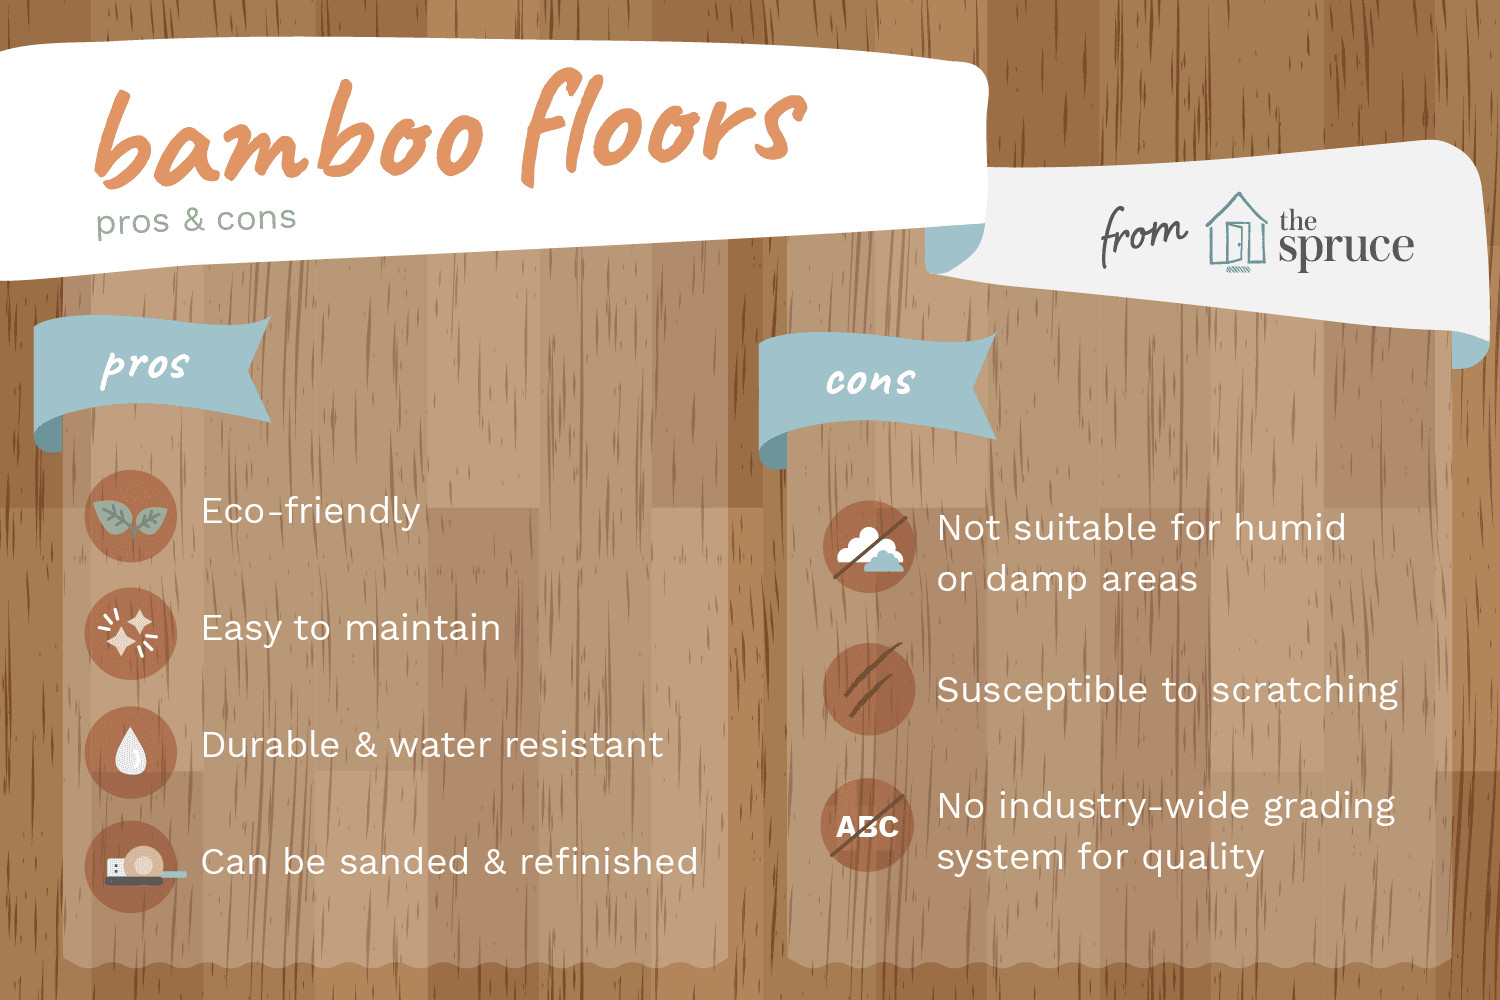 hardwood floor types hardness of the advantages and disadvantages of bamboo flooring in benefits and drawbacks of bamboo floors 1314694 v3 5b102fccff1b780036c0a4fa